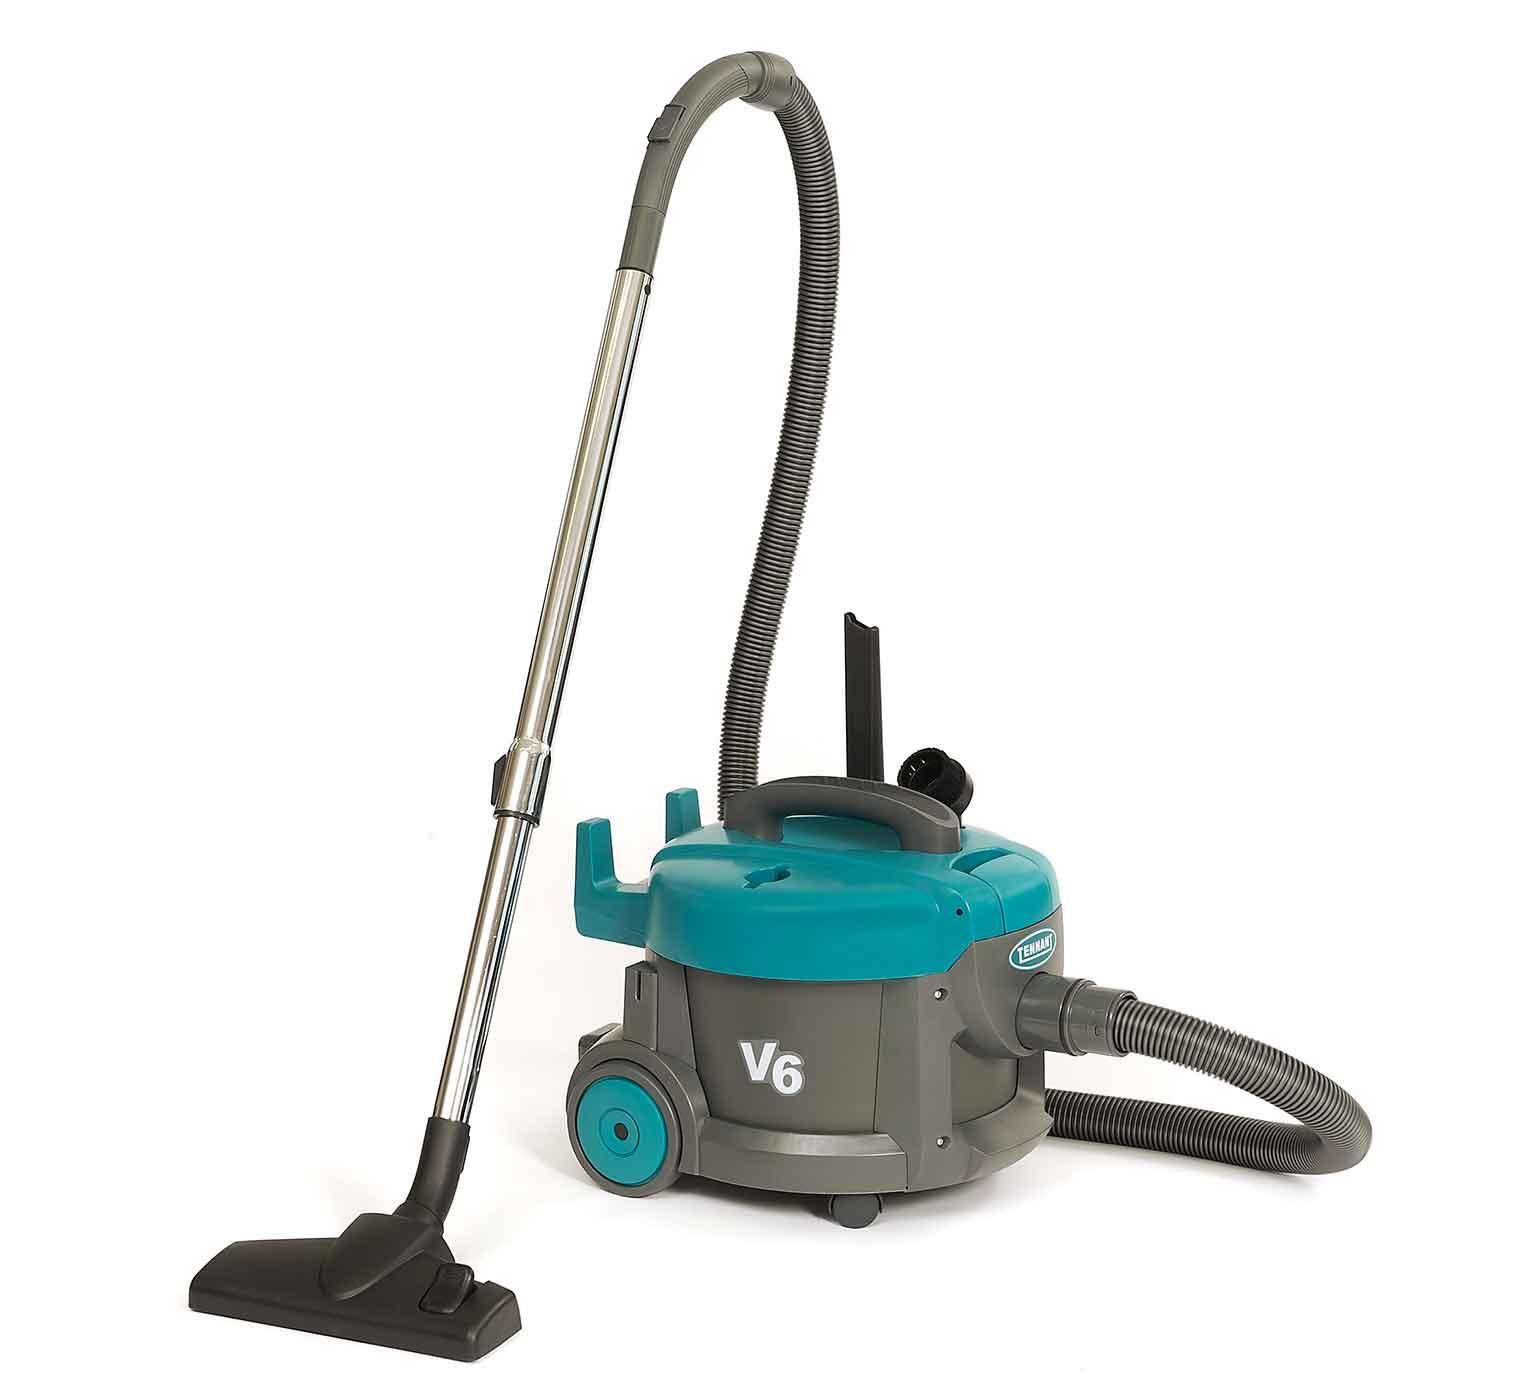 Tennant V6 Dry Canister Vacuum